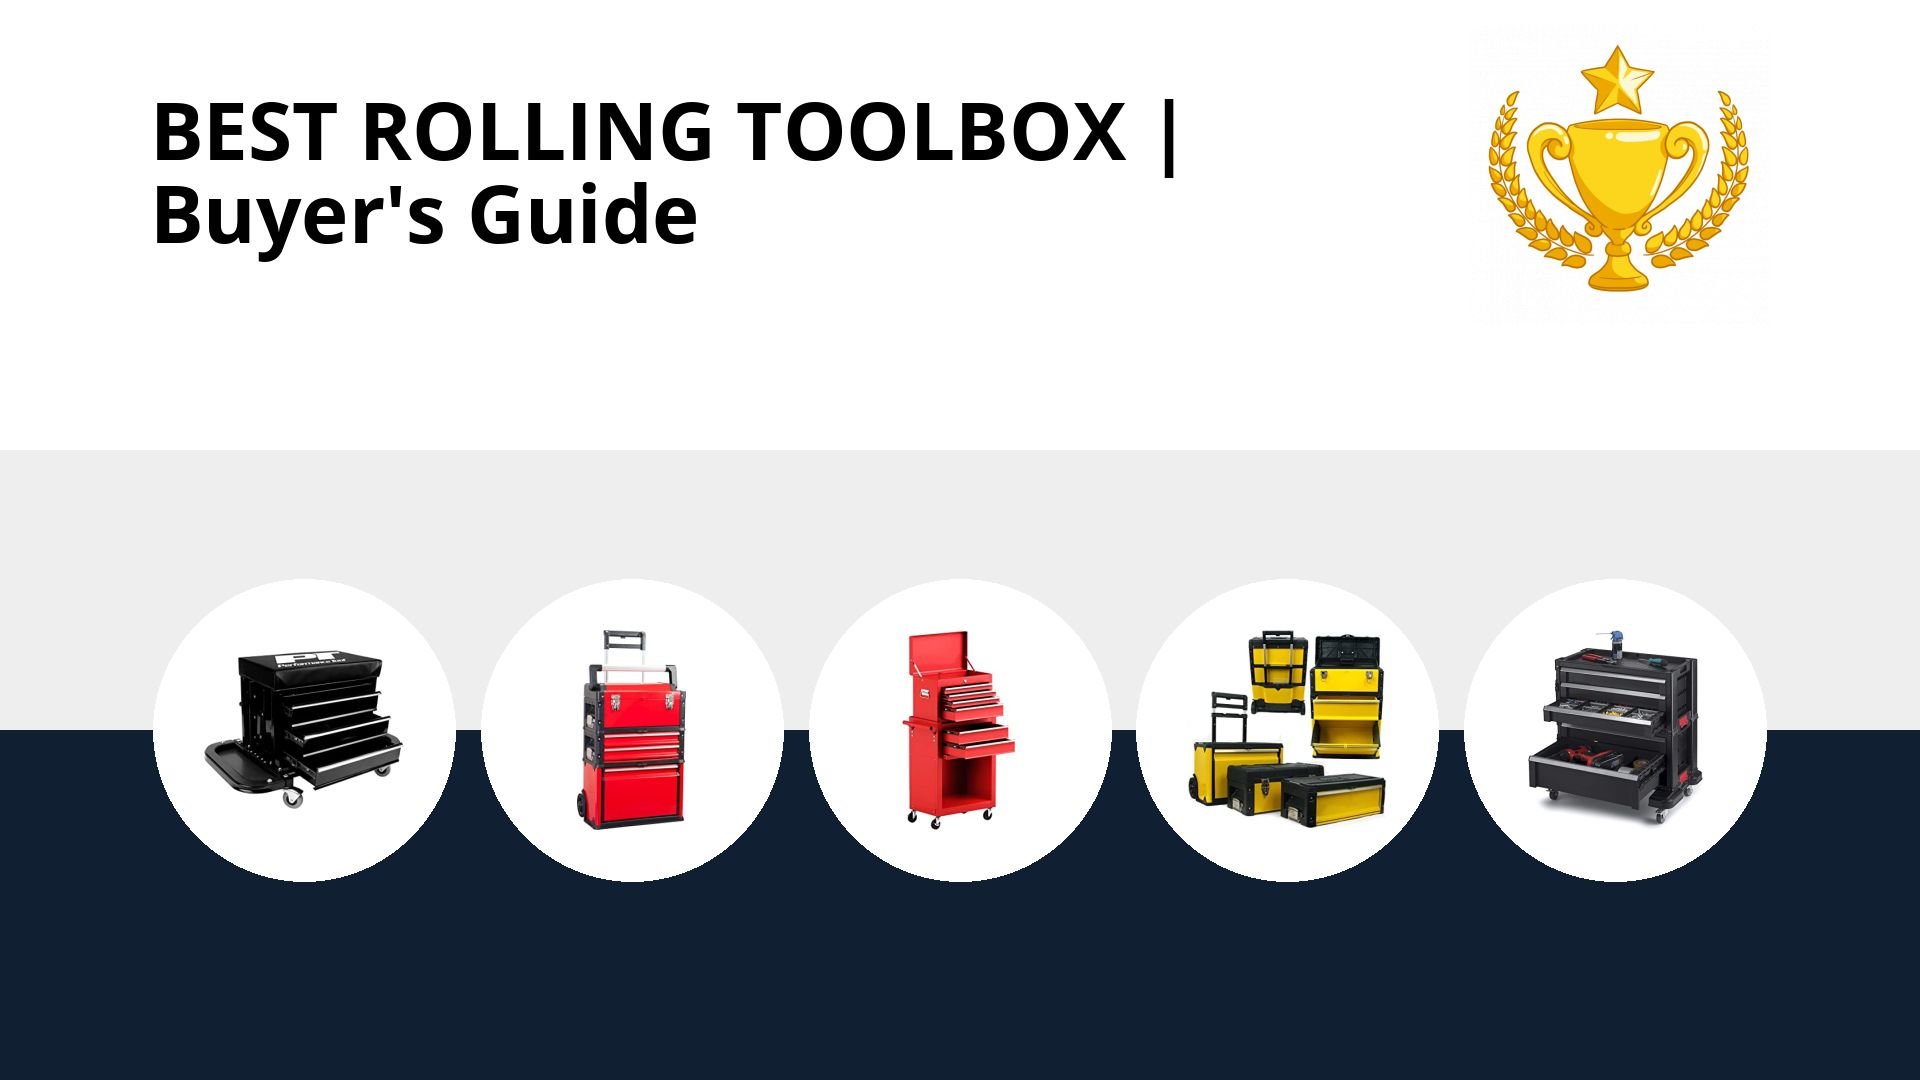 Best Rolling Toolbox: image